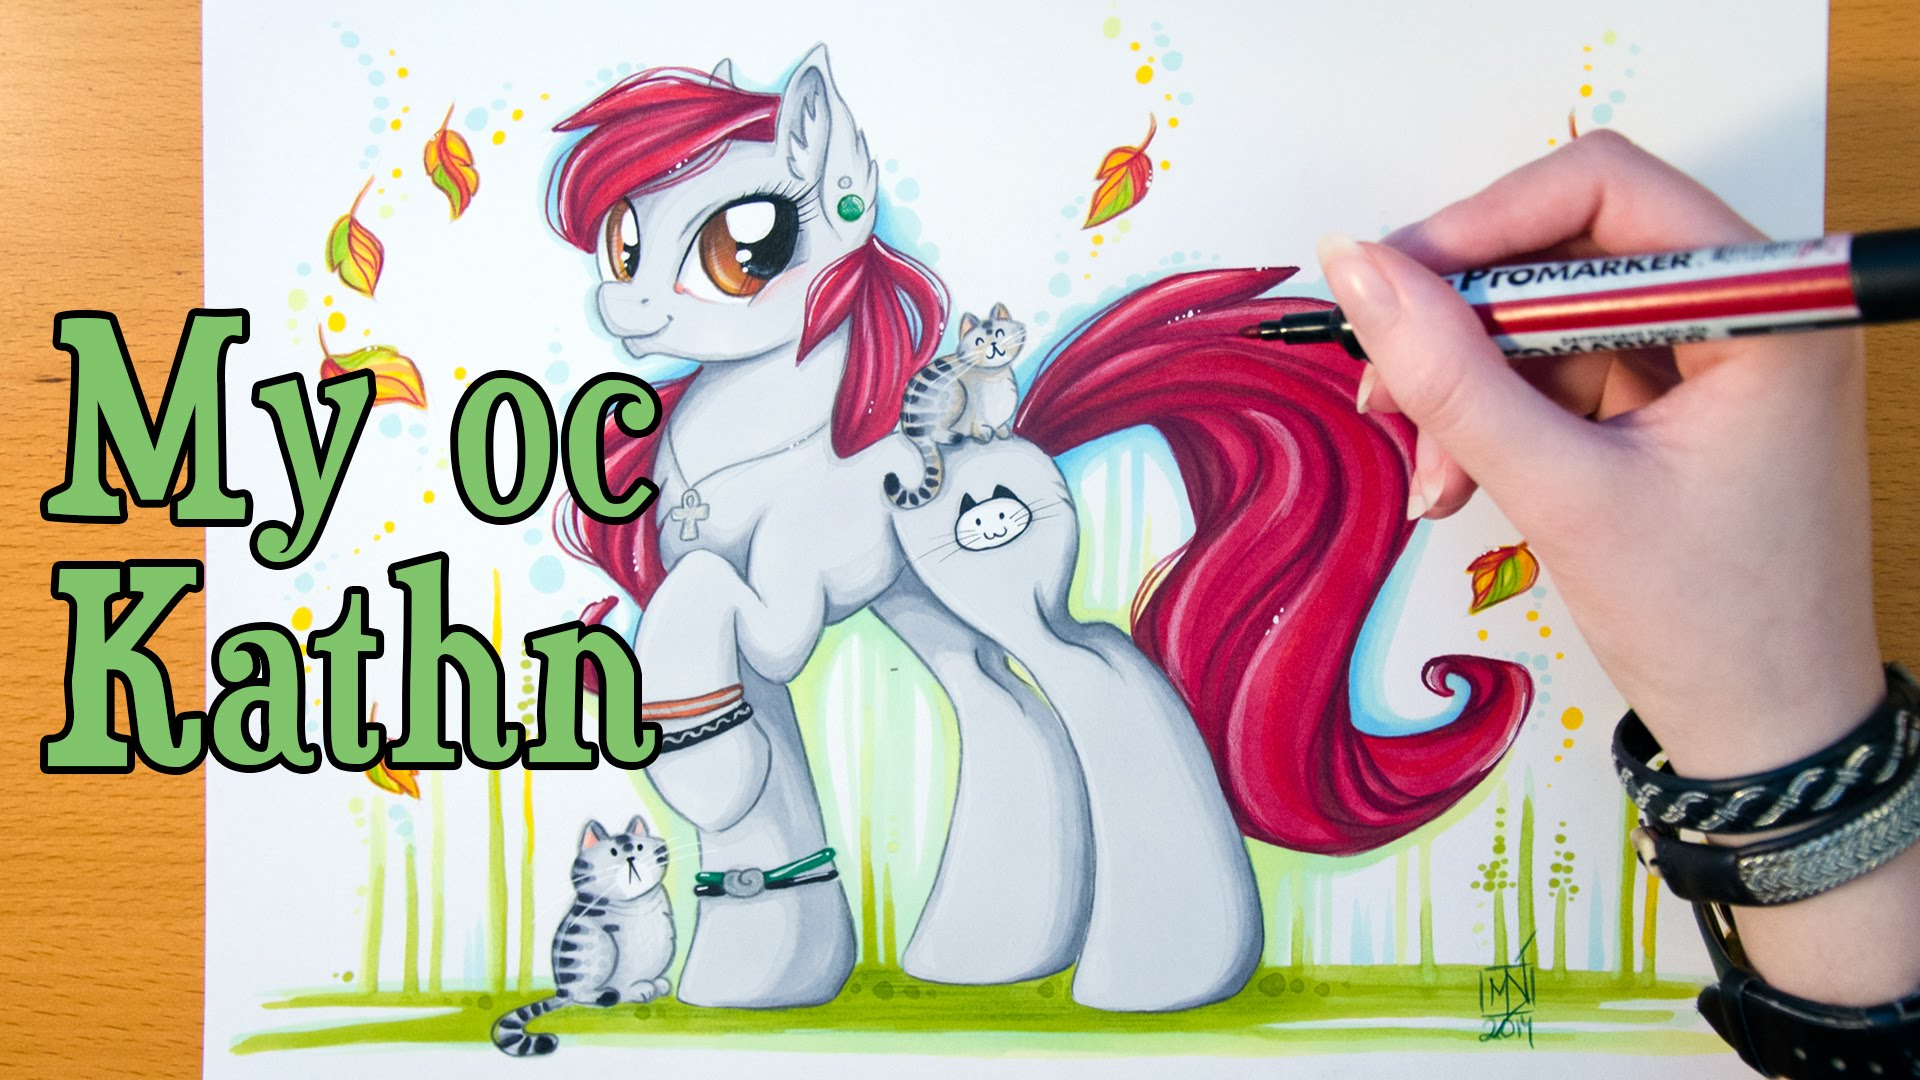 Drawn my little pony speed My MLP Kathn Speed Drawing